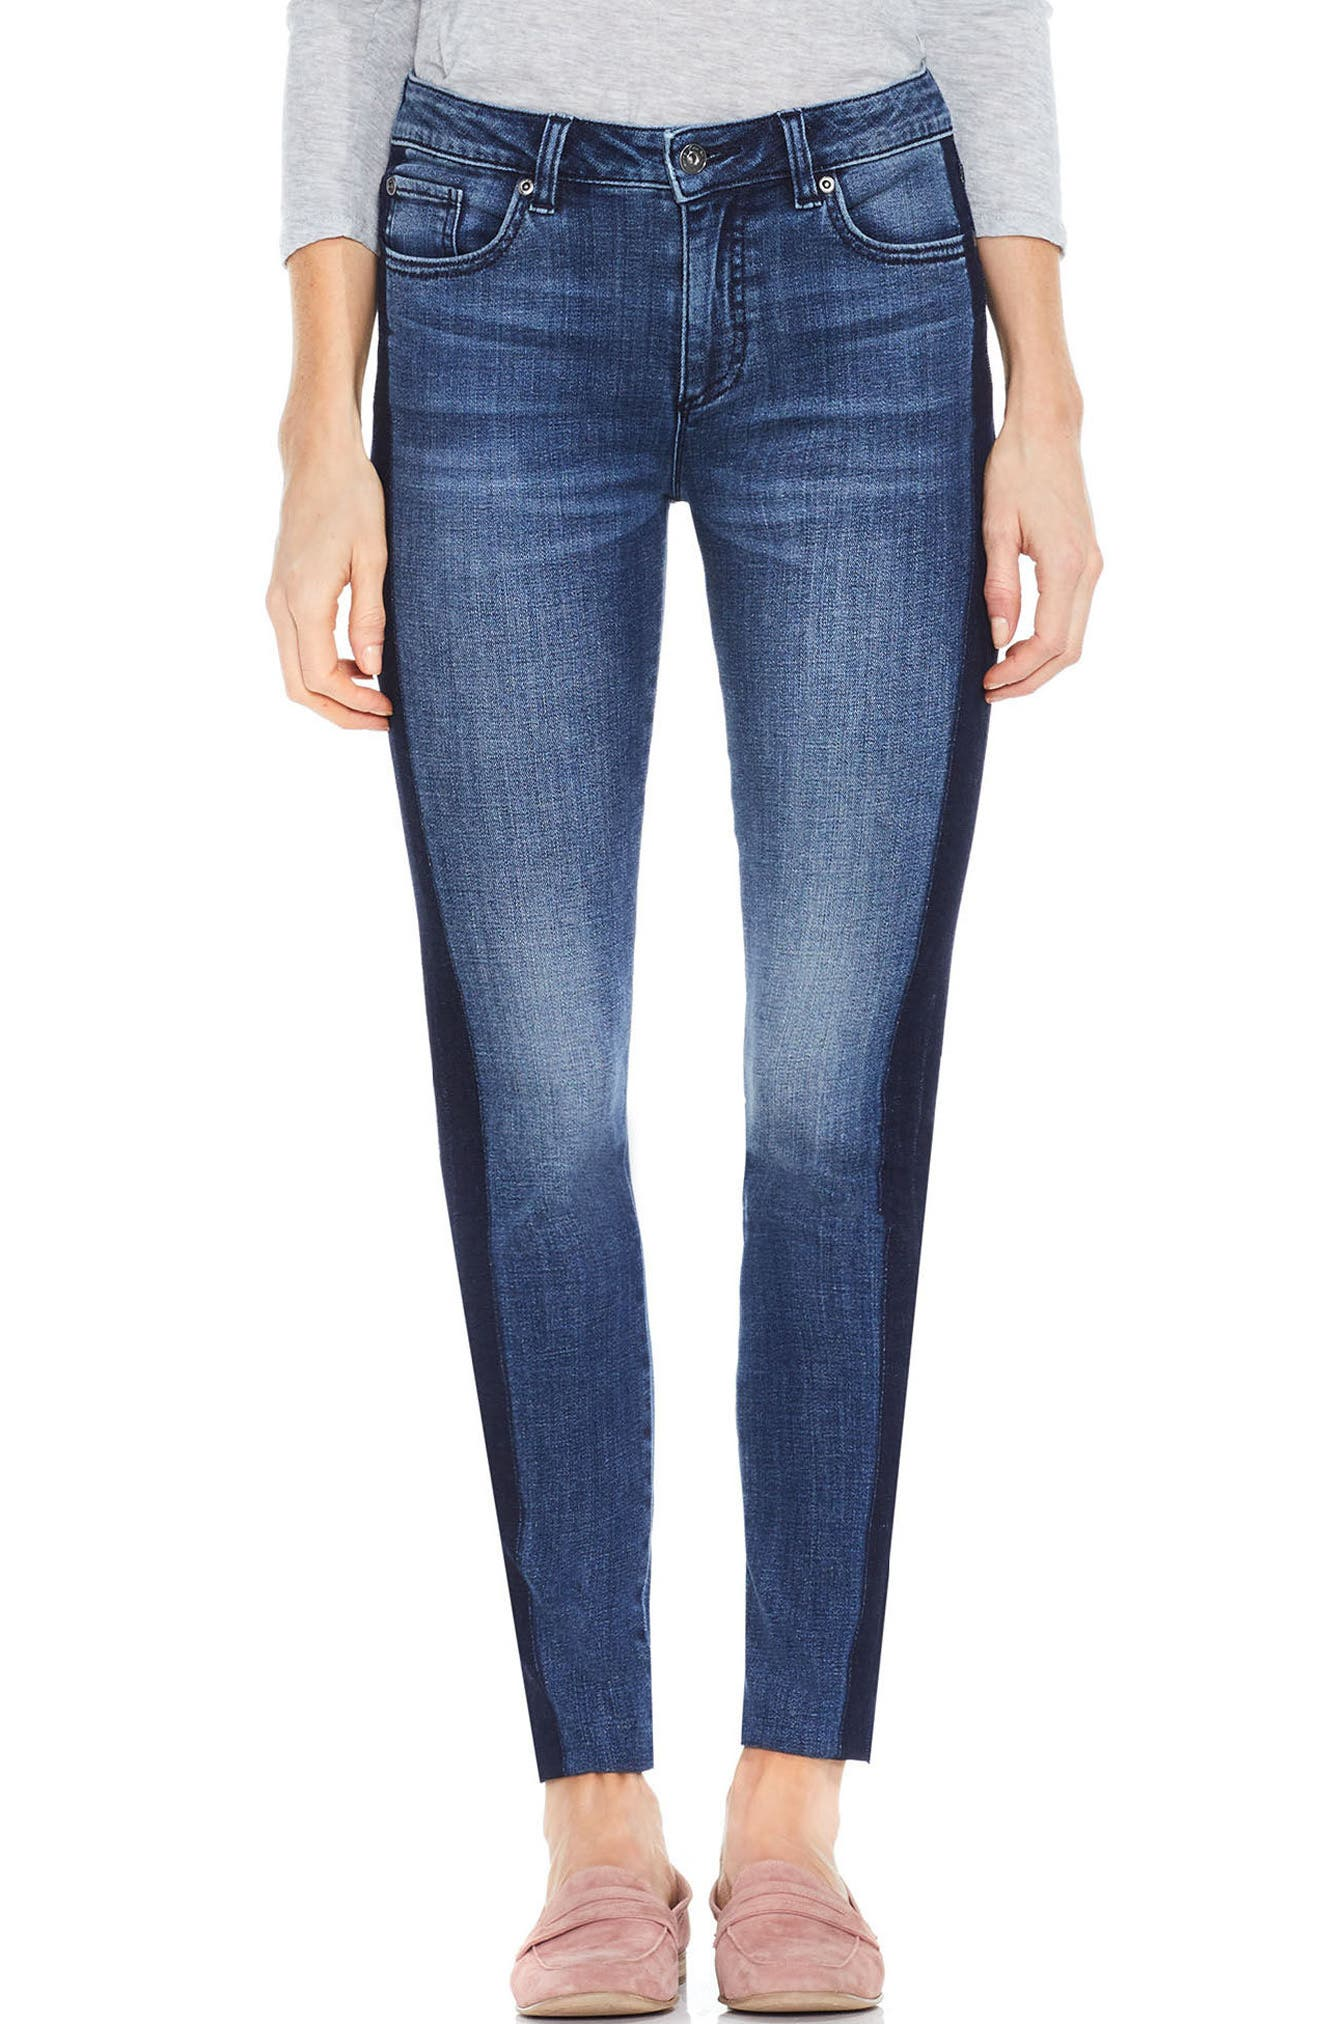 Two by Vince Camuto Two-Tone Skinny Jeans,                         Main,                         color, INDIGO SHADOW